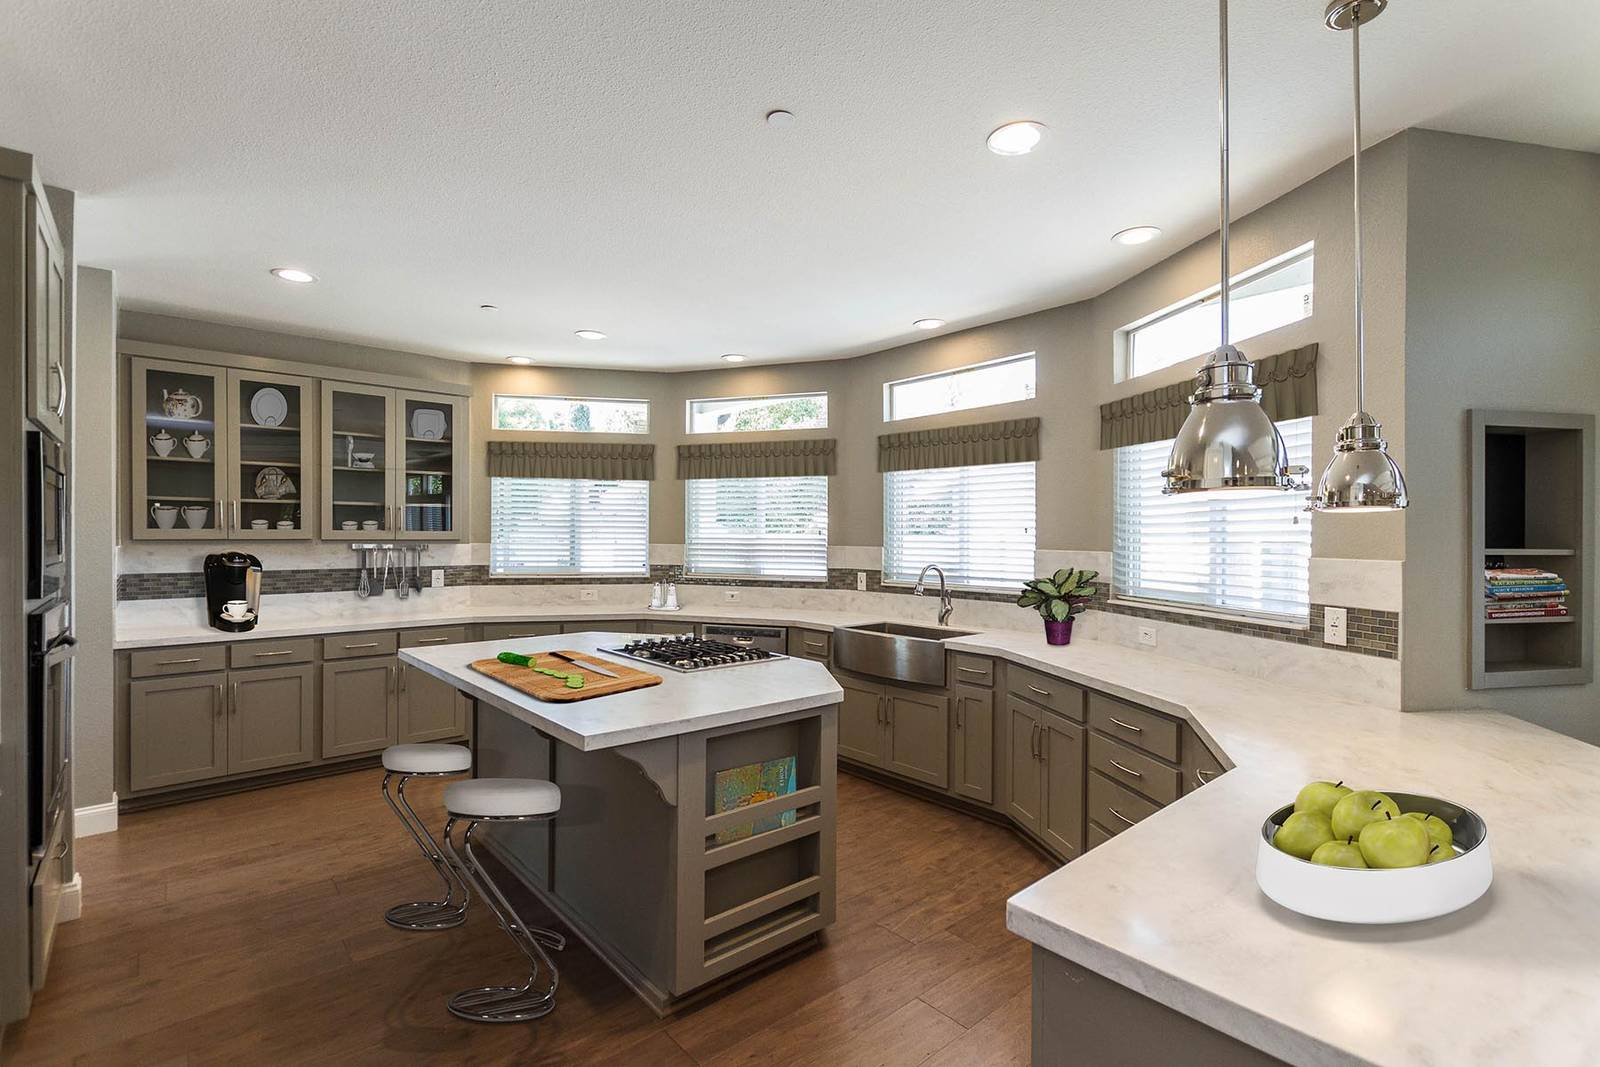 Bradford Bd 45 By Ideal Manufactured Homes